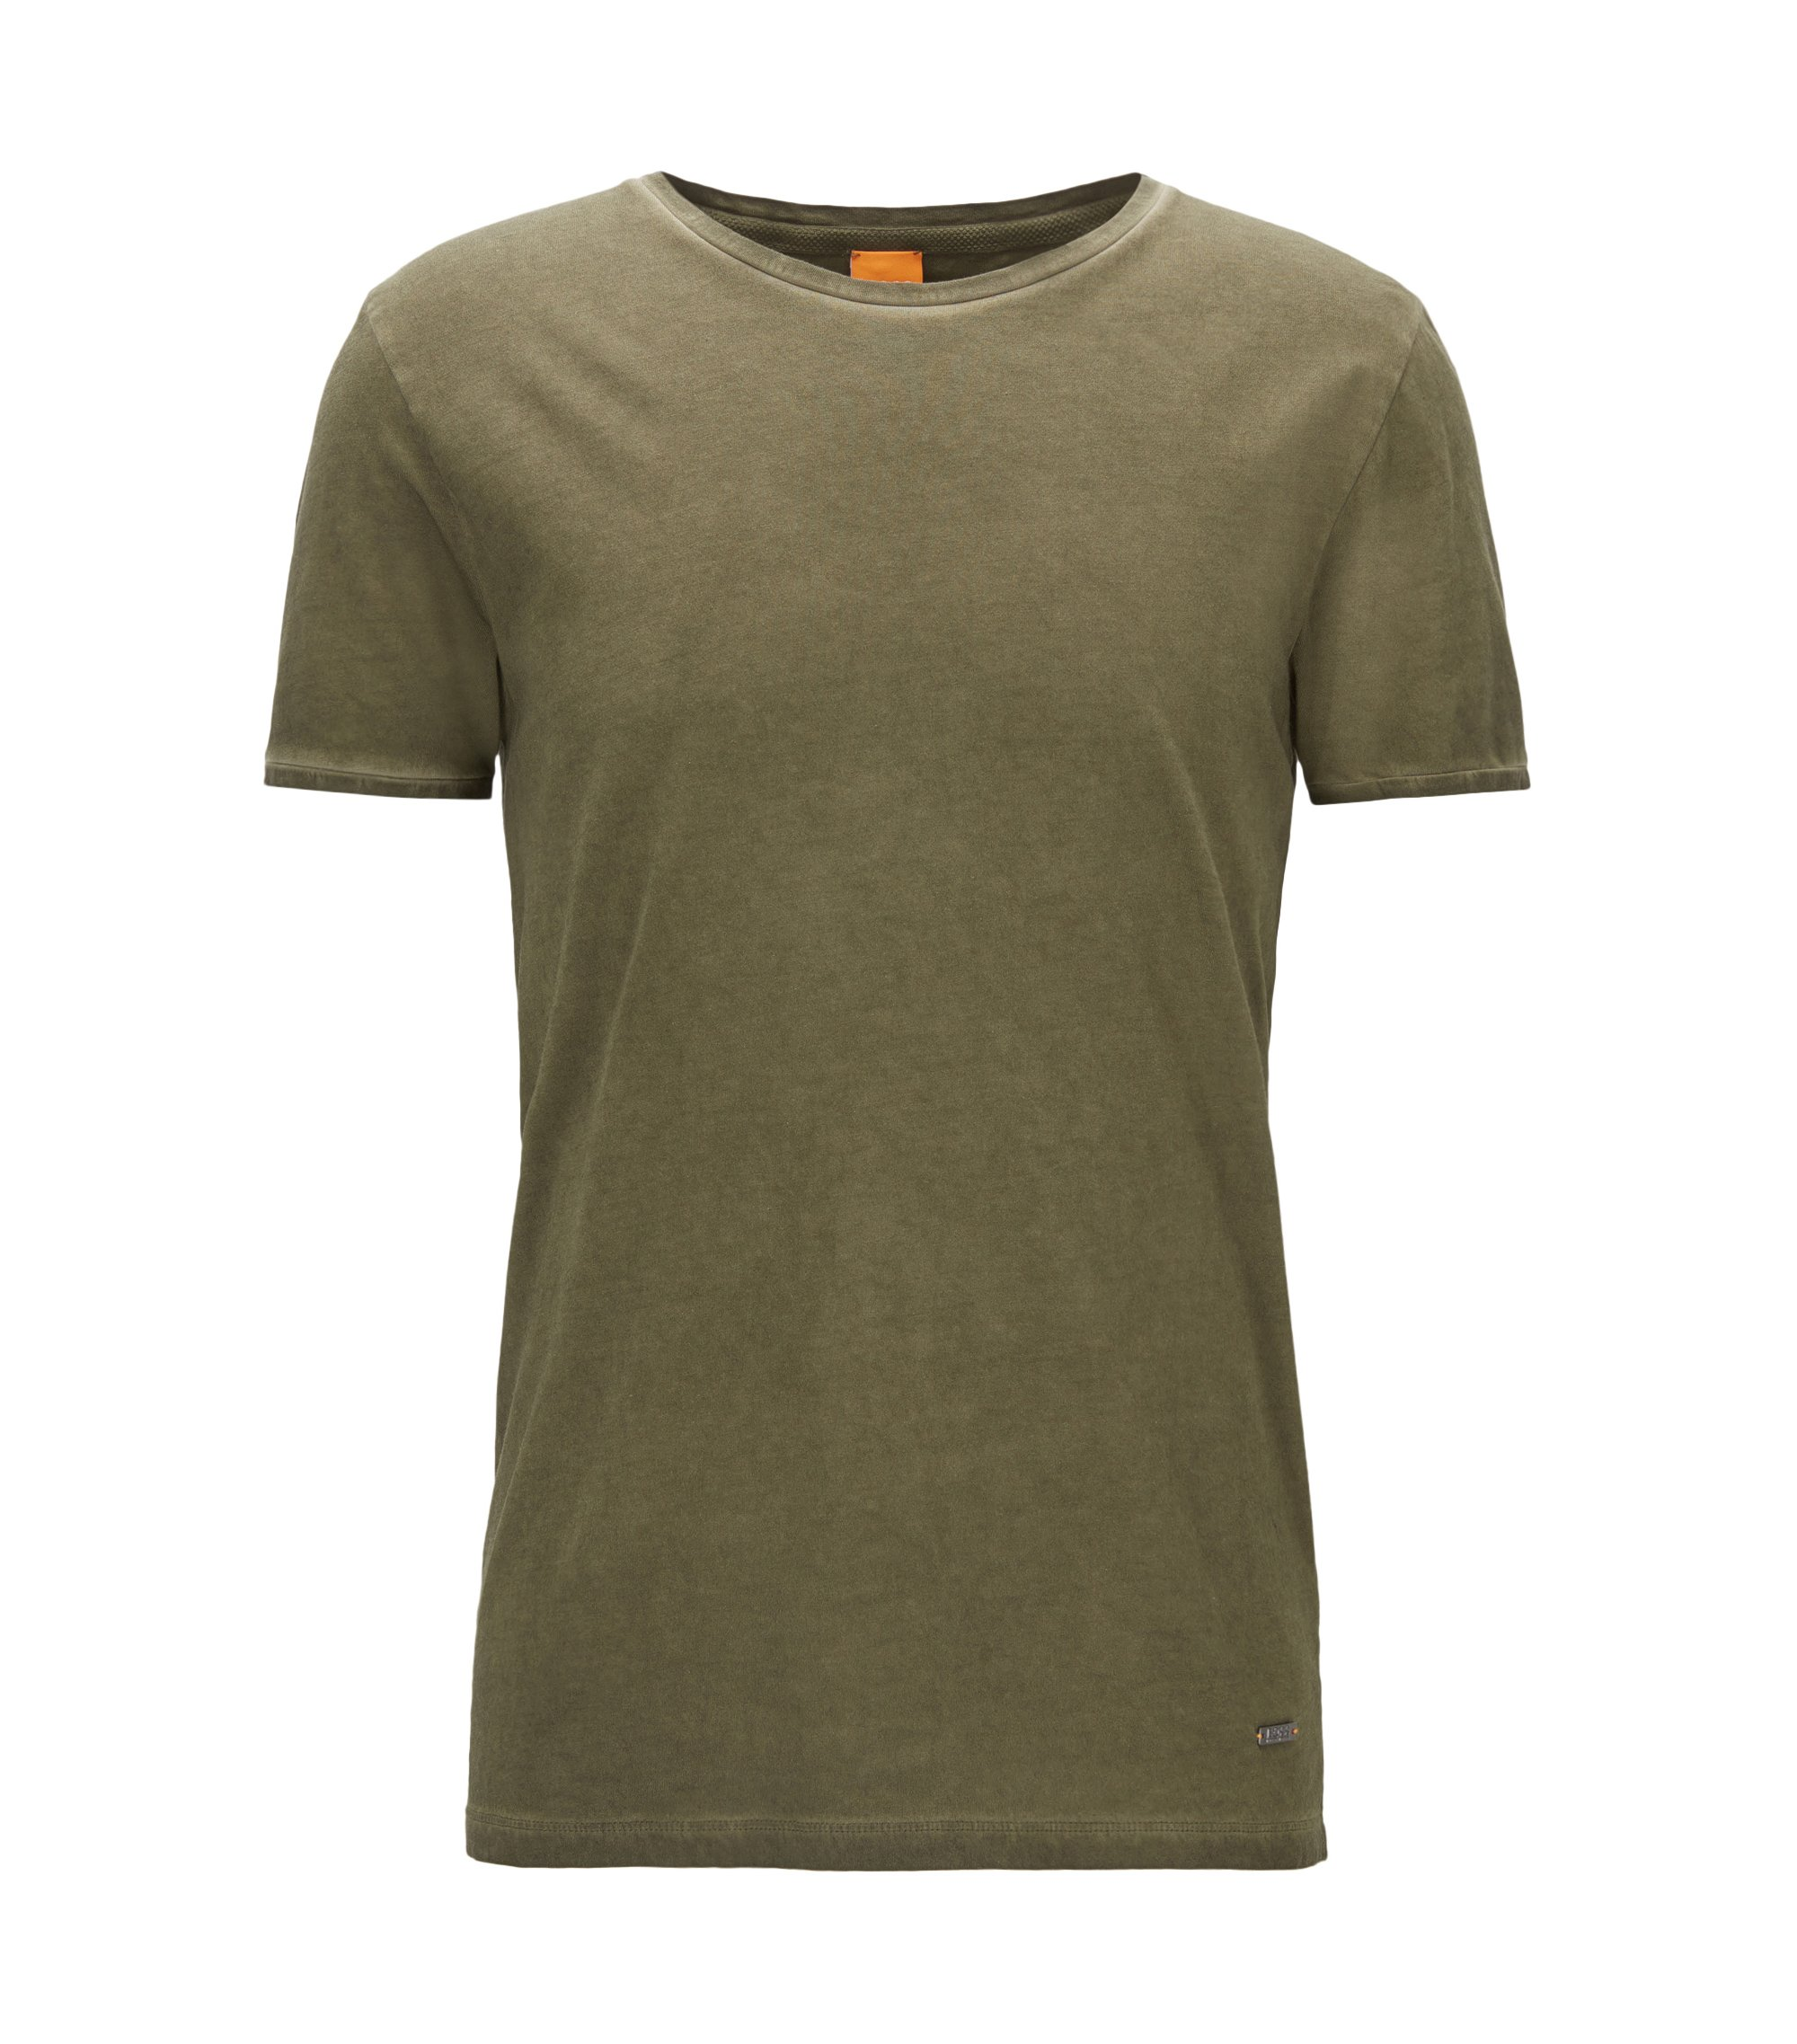 T-shirt regular fit in cotone tinto in capo, Kaki